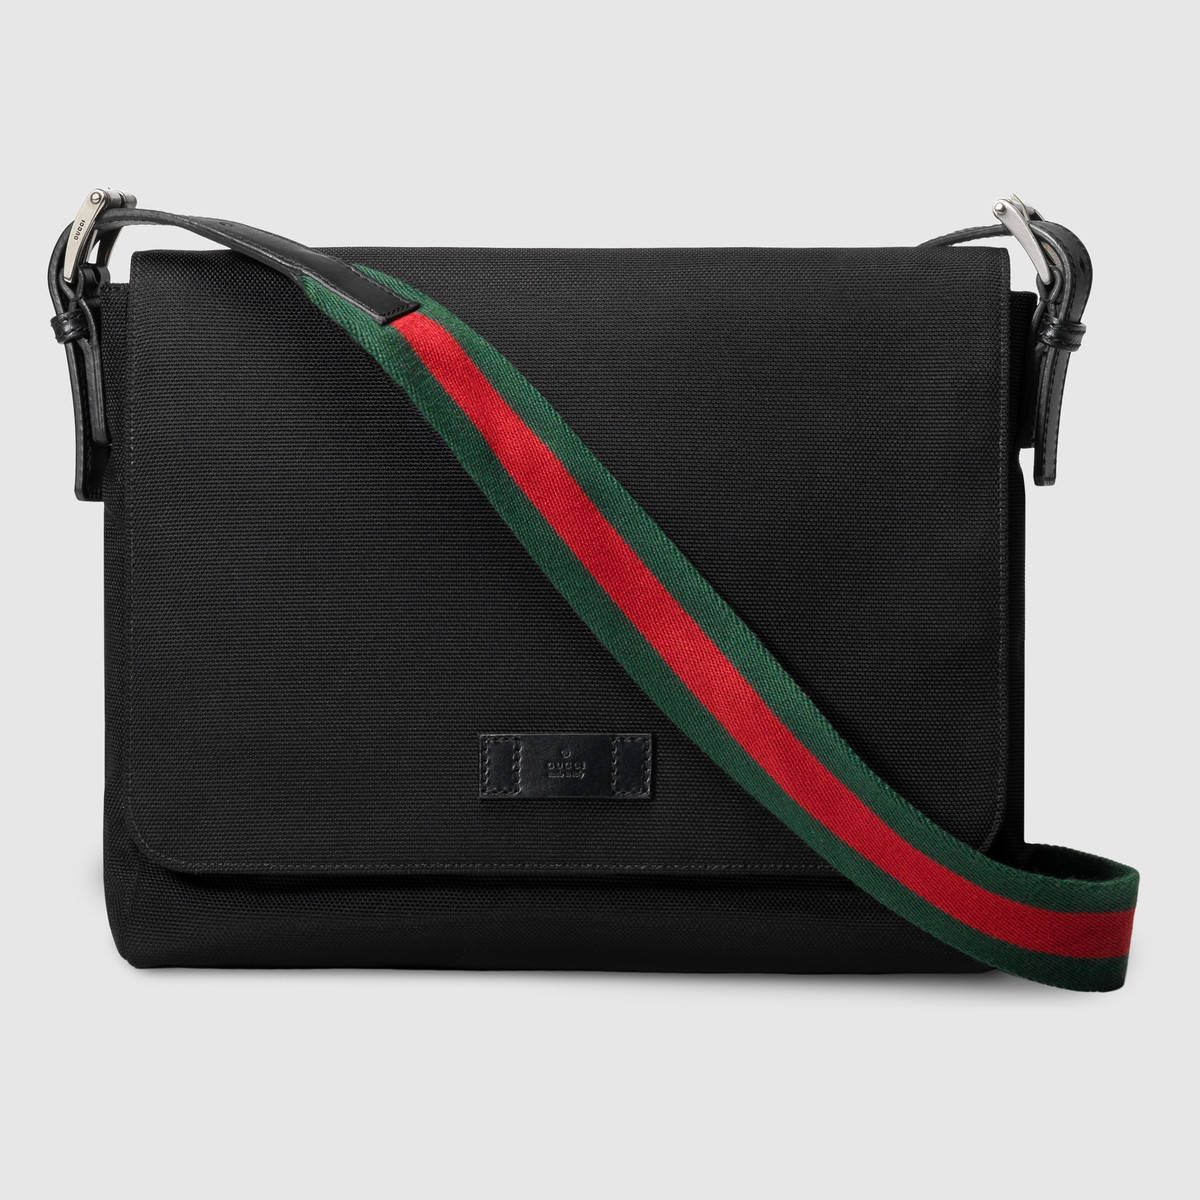 ca525b0b428 GUCCI Web Small Messenger Bag - Black.  gucci  bags  shoulder bags  leather   nylon  lining